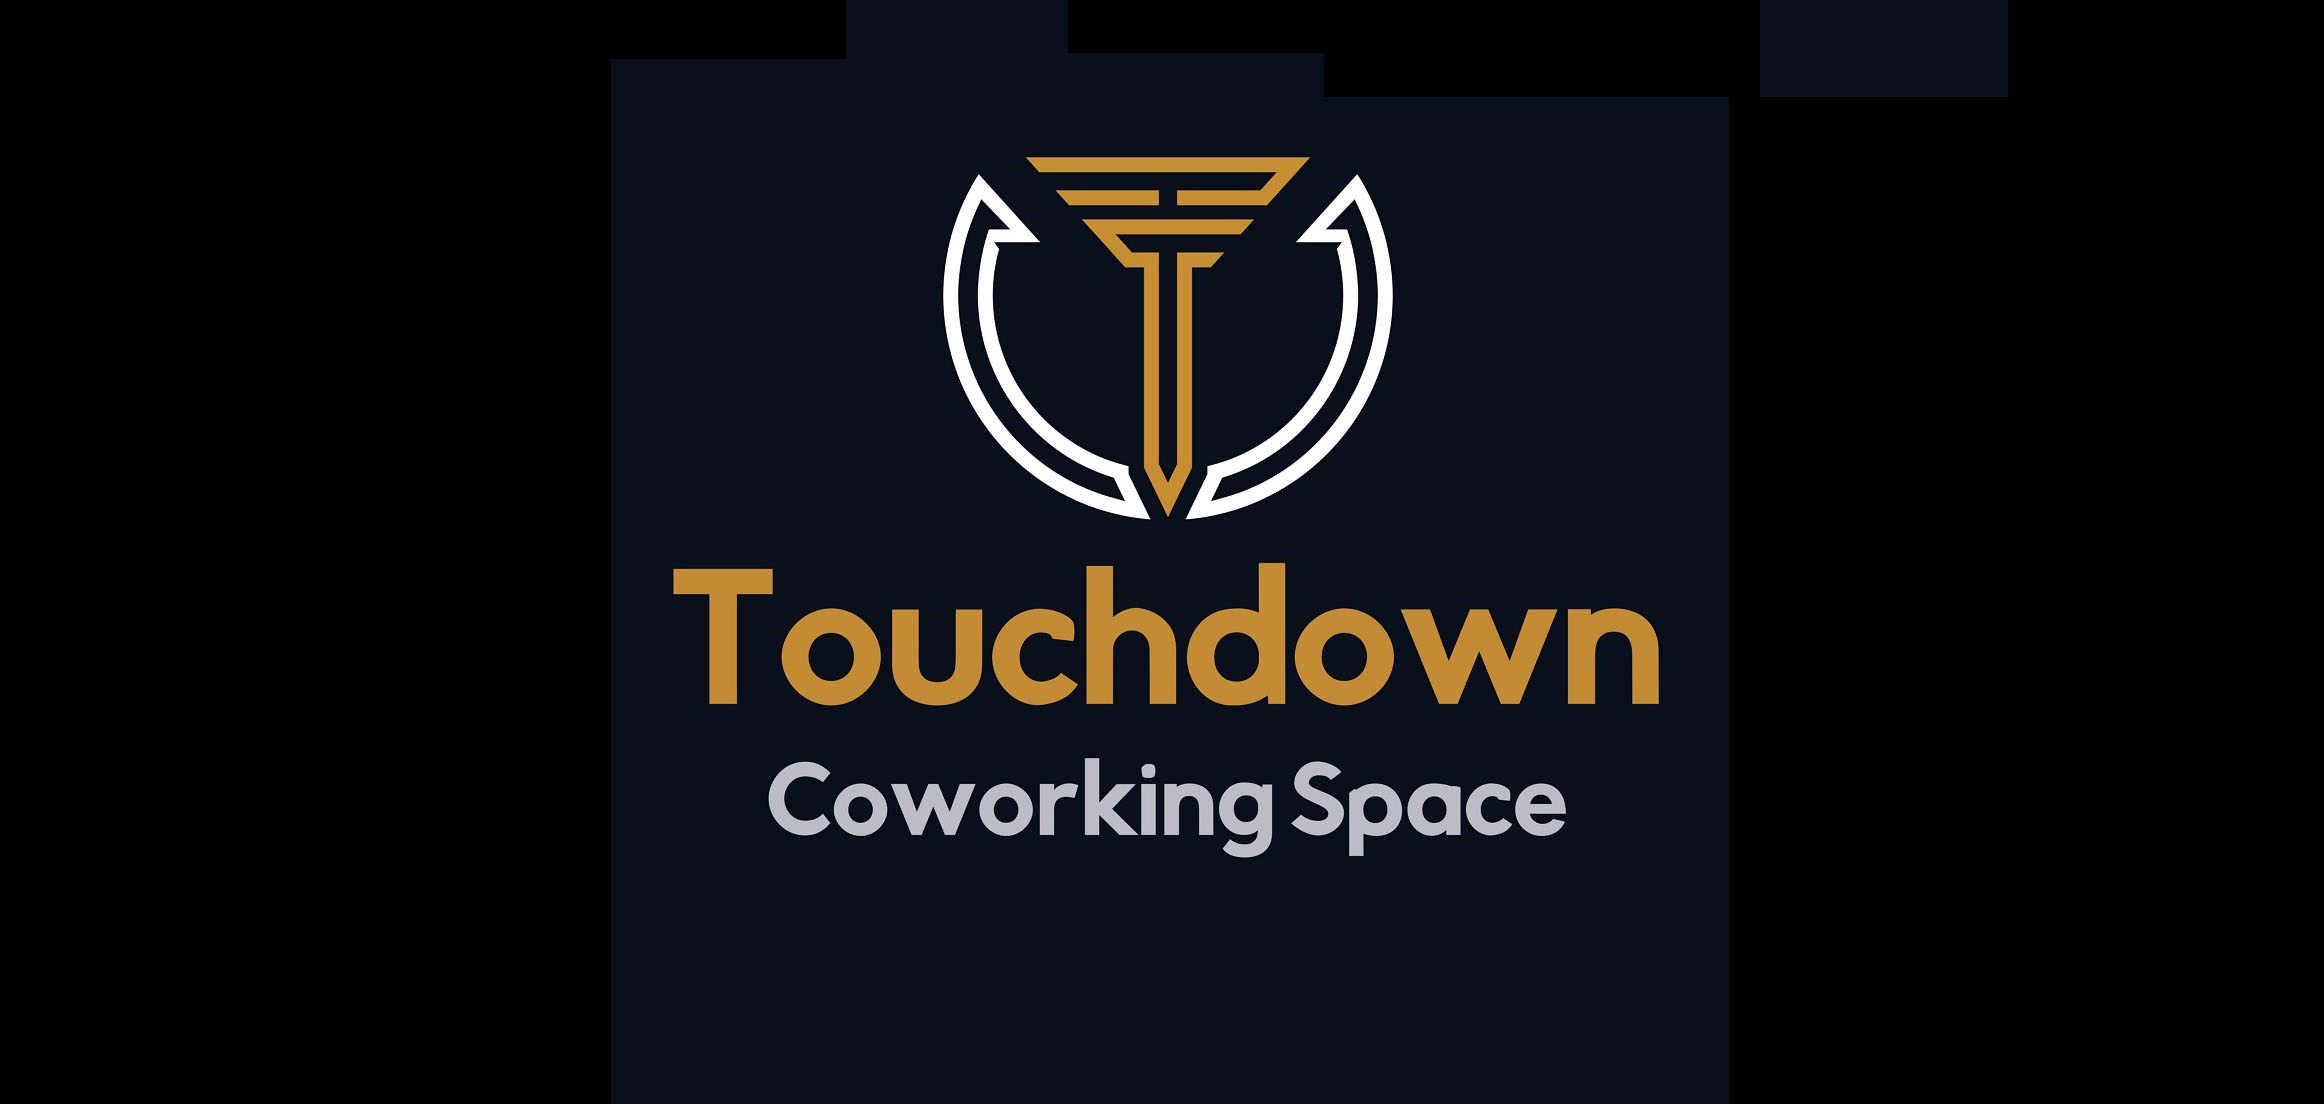 Touchdown Coworking Space